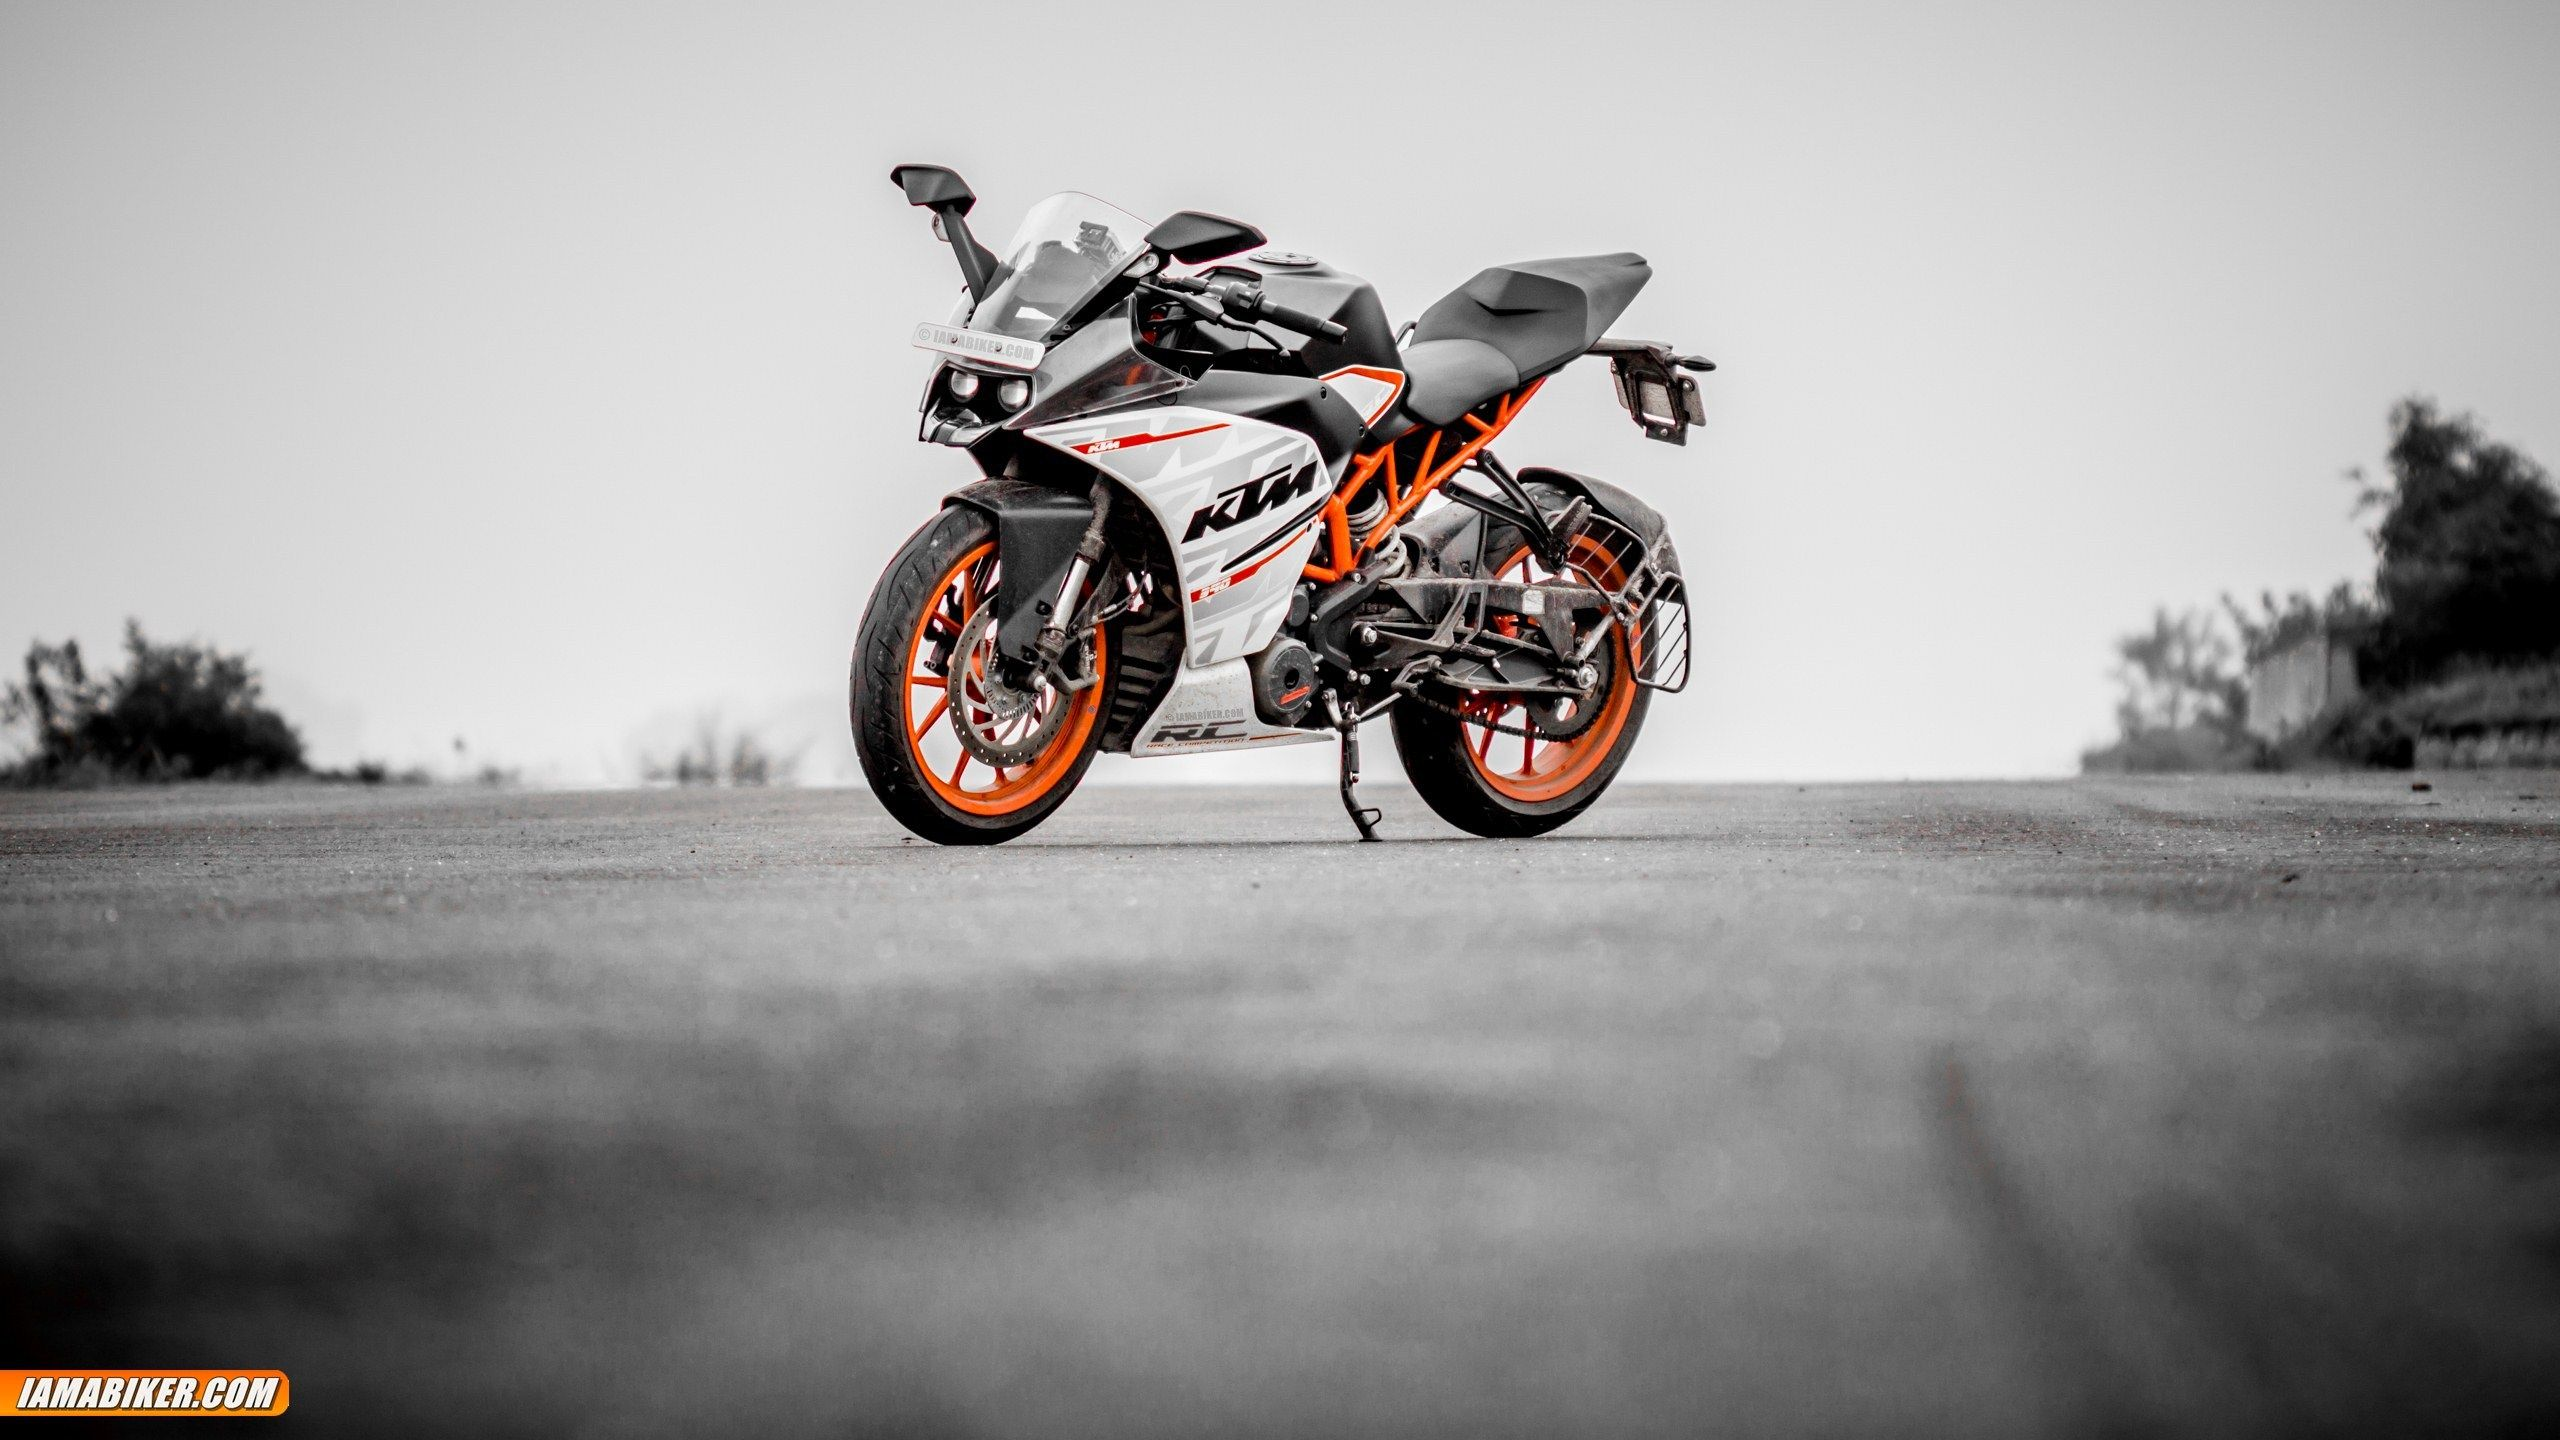 Ktm Wallpapers In 2020 Motorcycle Wallpaper Ktm Rc Motorcycle